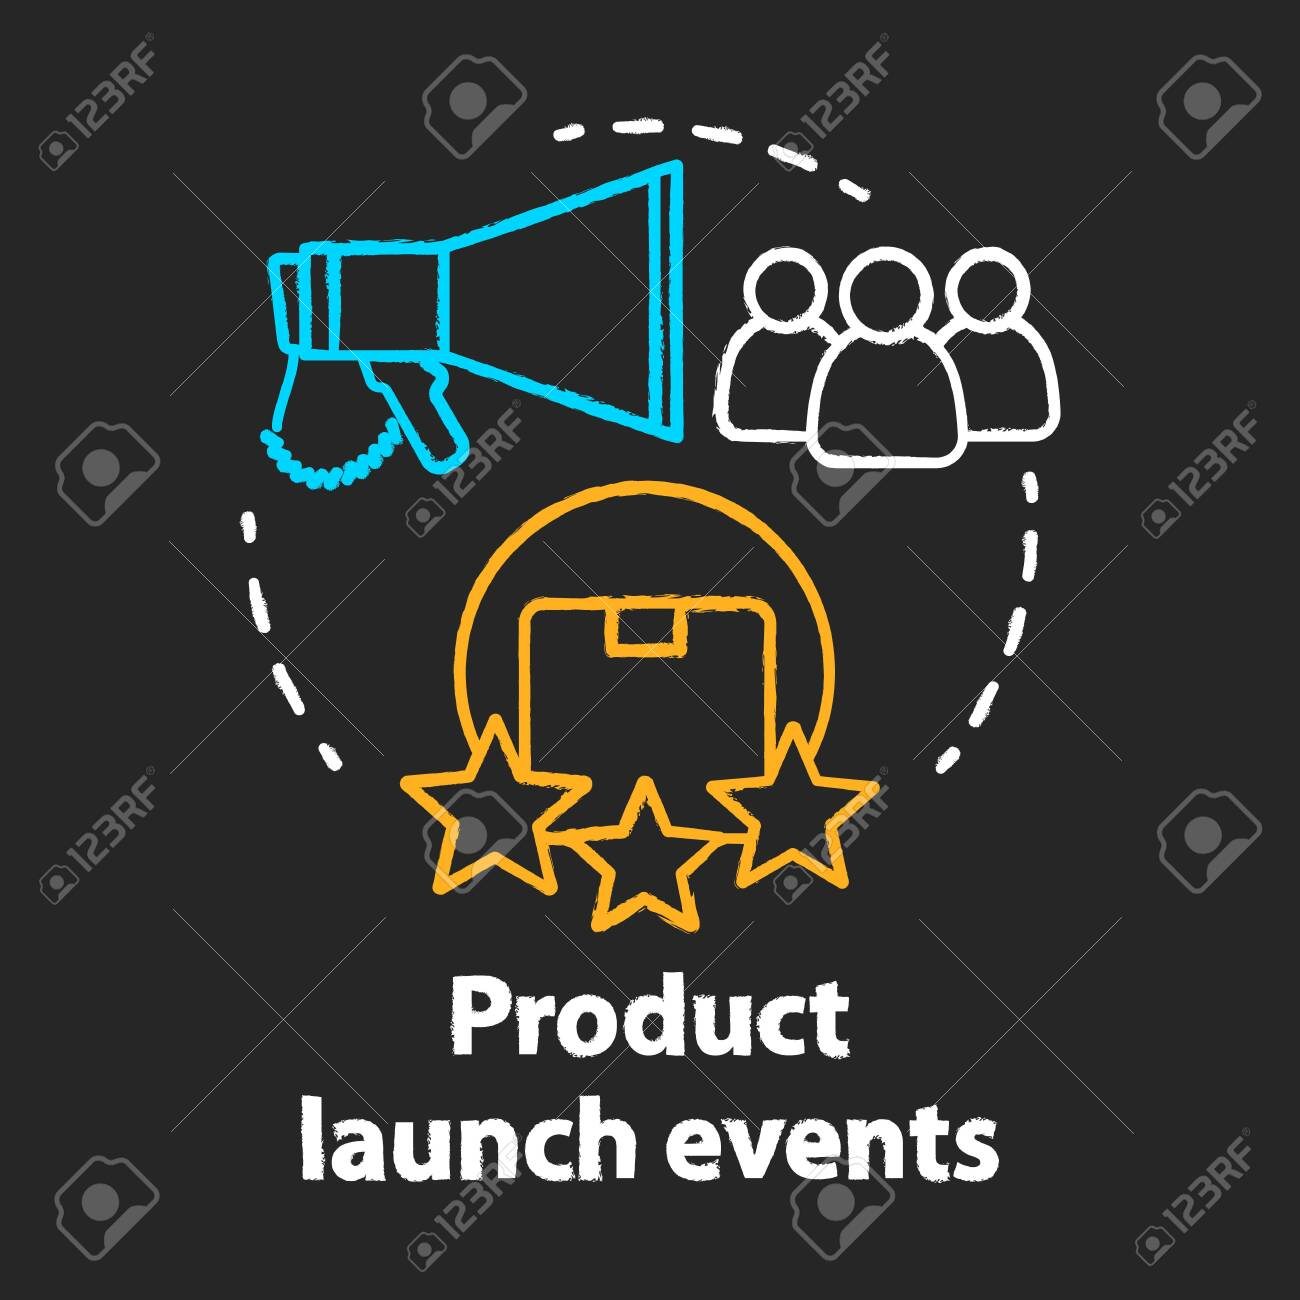 Marketing plan new product launch ppt powerpoint presentation.